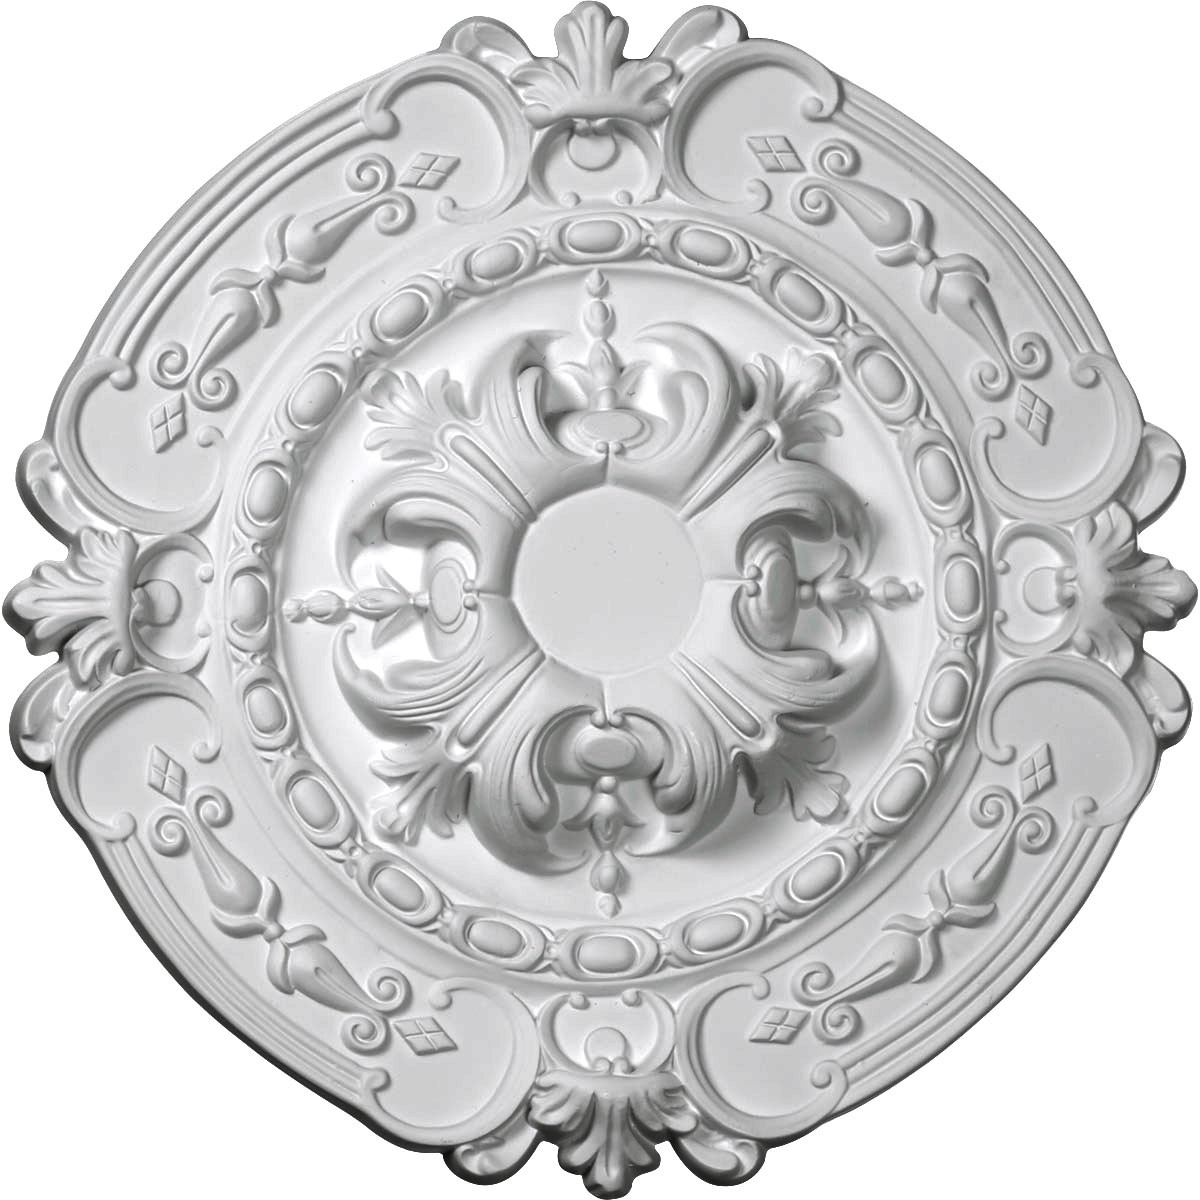 "EM-CM17SO - 16 3/8""OD x 1 3/4""P Southampton Ceiling Medallion (Fits Canopies up to 2 3/4"")"